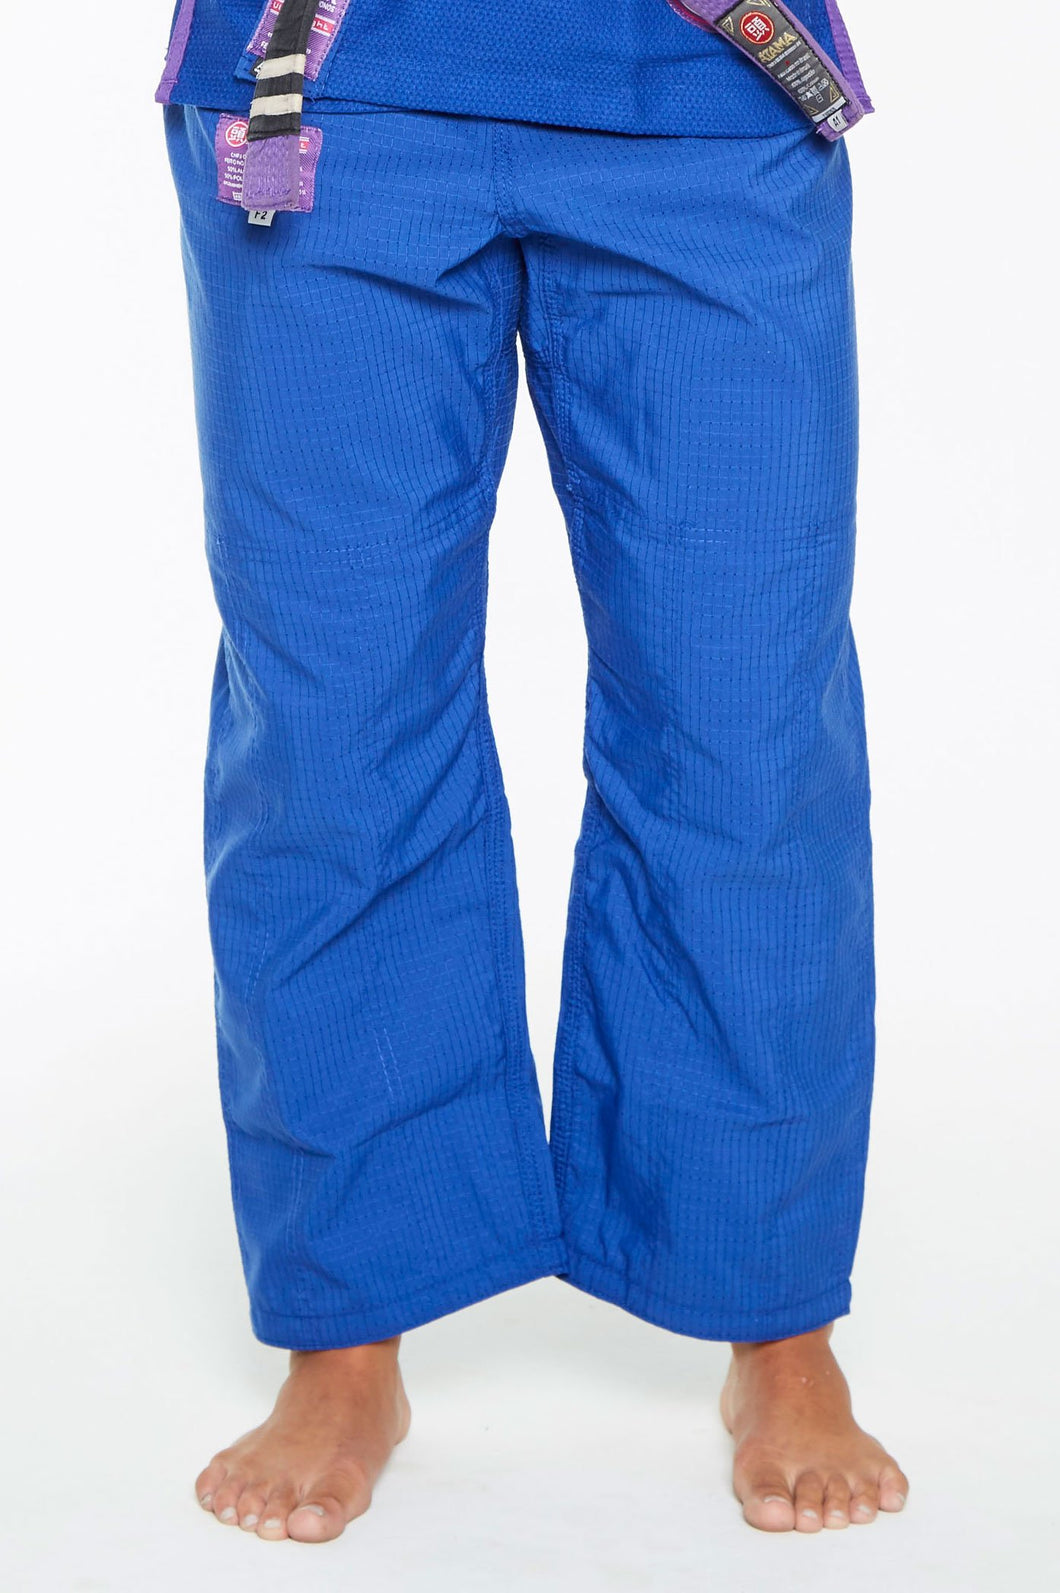 BLUE ATAMA ULTRA-LIGHT WOMEN GI PANTS - GATAME